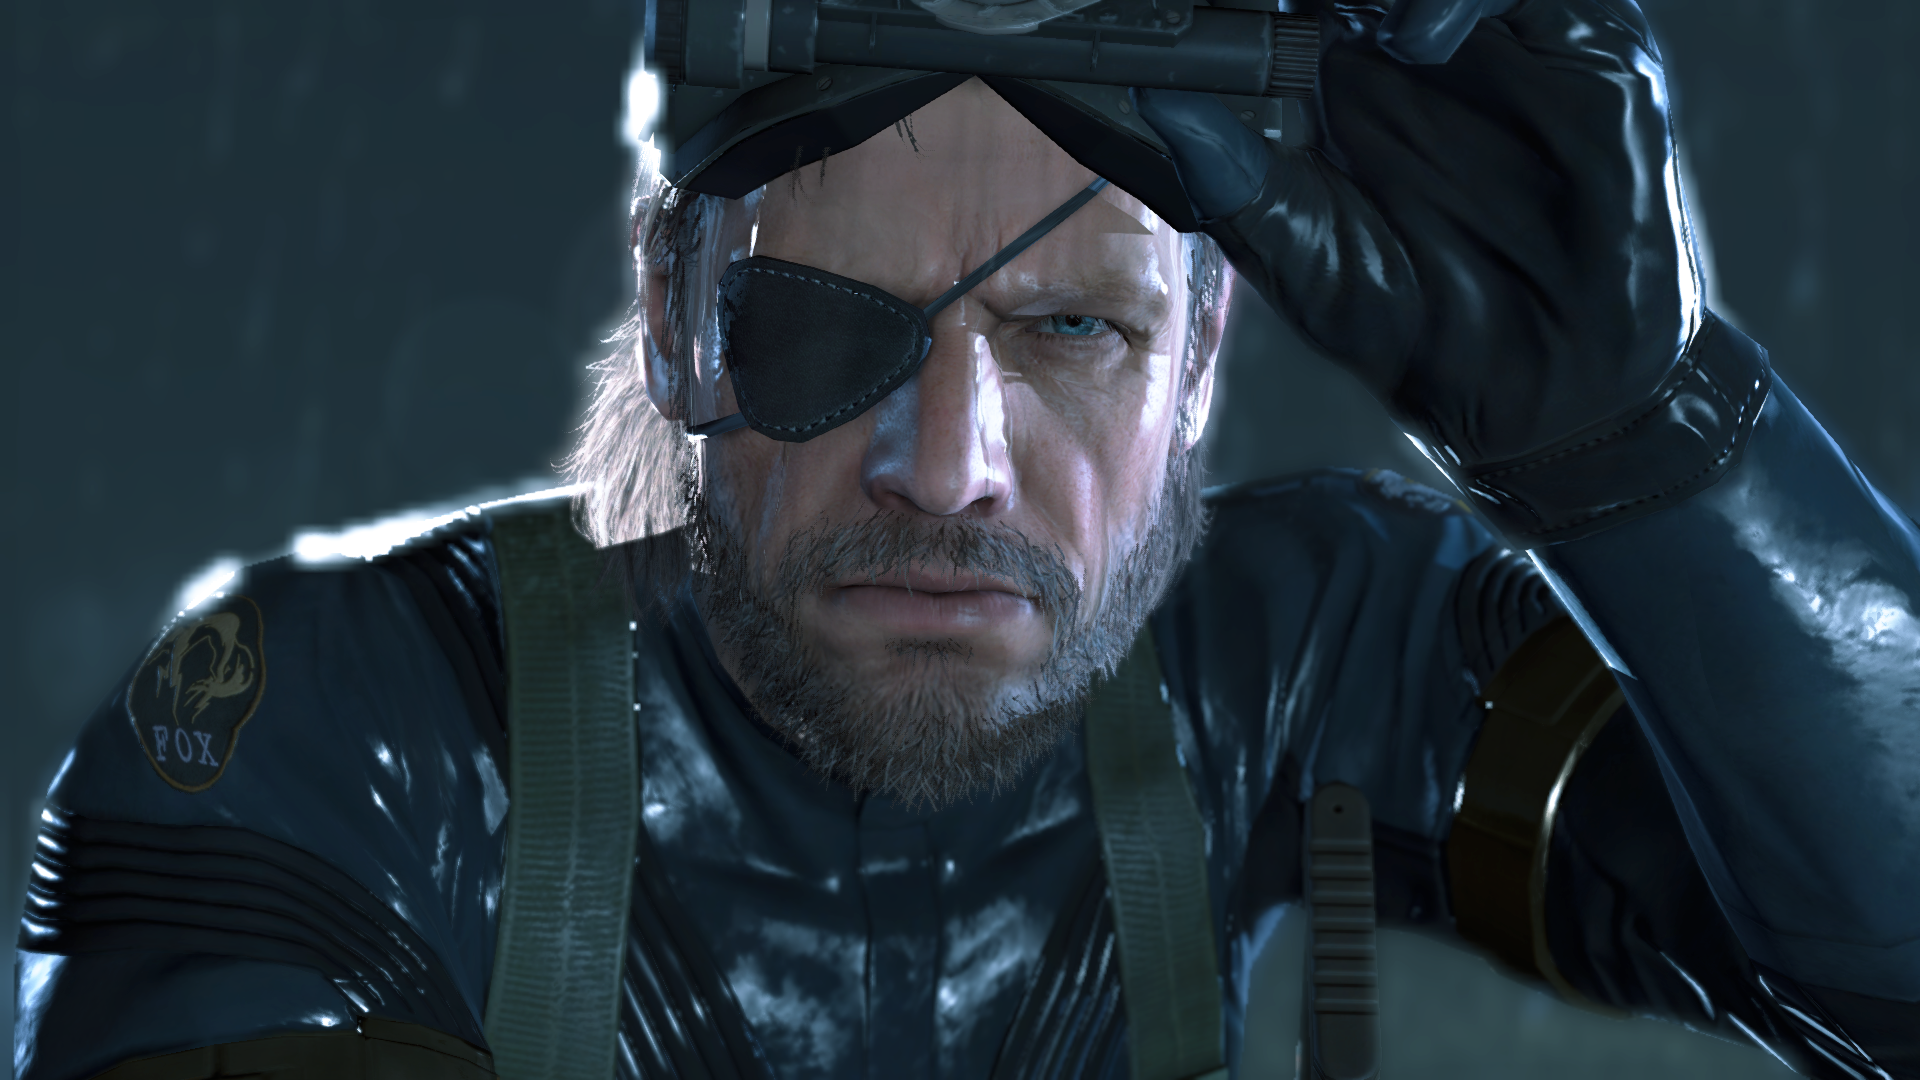 edcaaa72520 Metal Gear Solid V  Ground Zeroes PC review